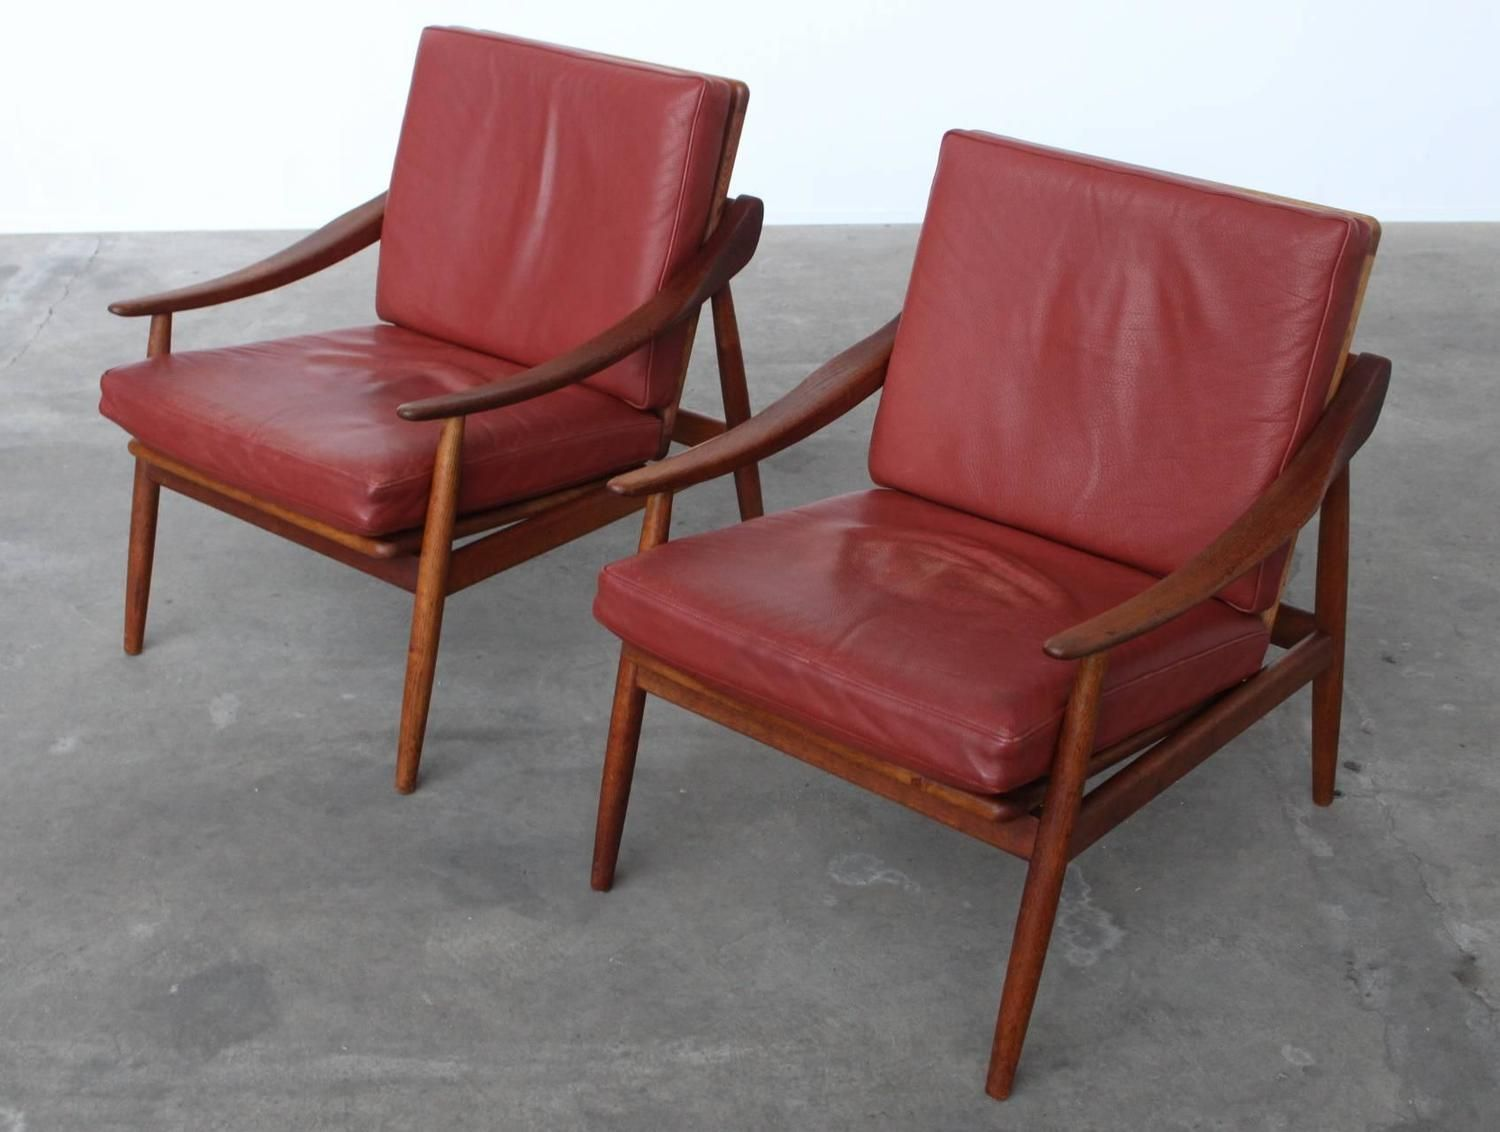 Pair Of Kurt Ostervig Leather U0026 Teak Lounge Chairs For Jason Møbler Denmark  1956 | From